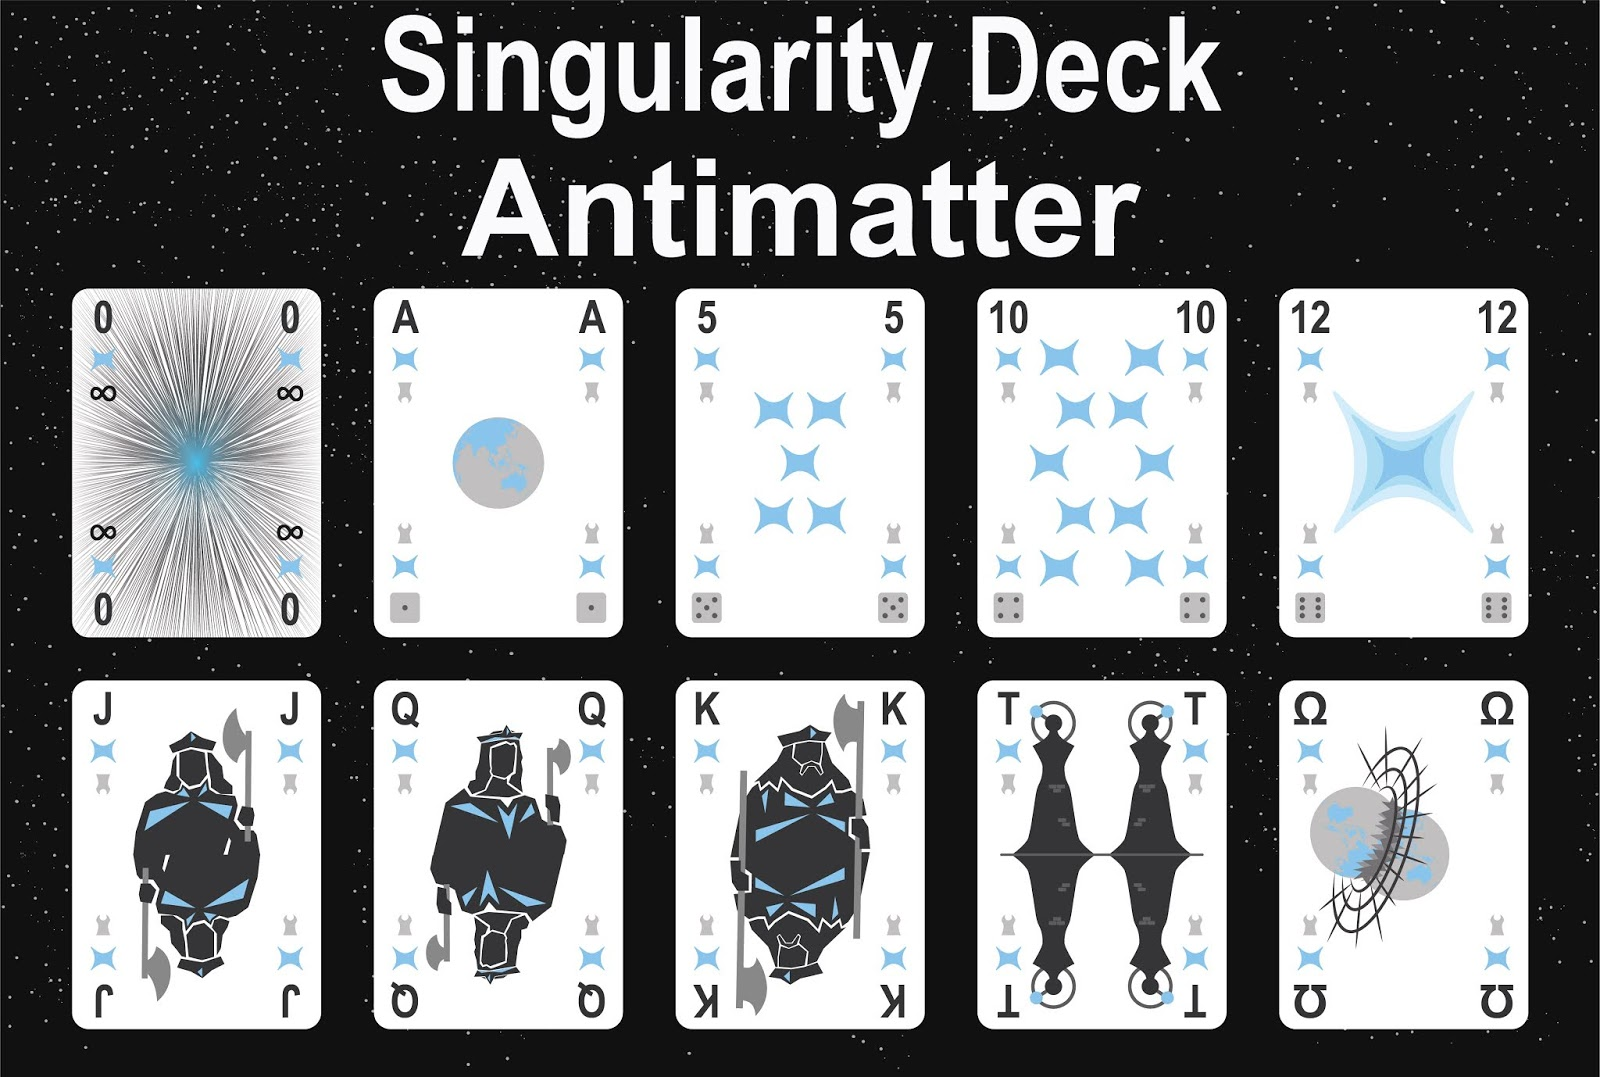 The Singularity Deck - Antimatter Art